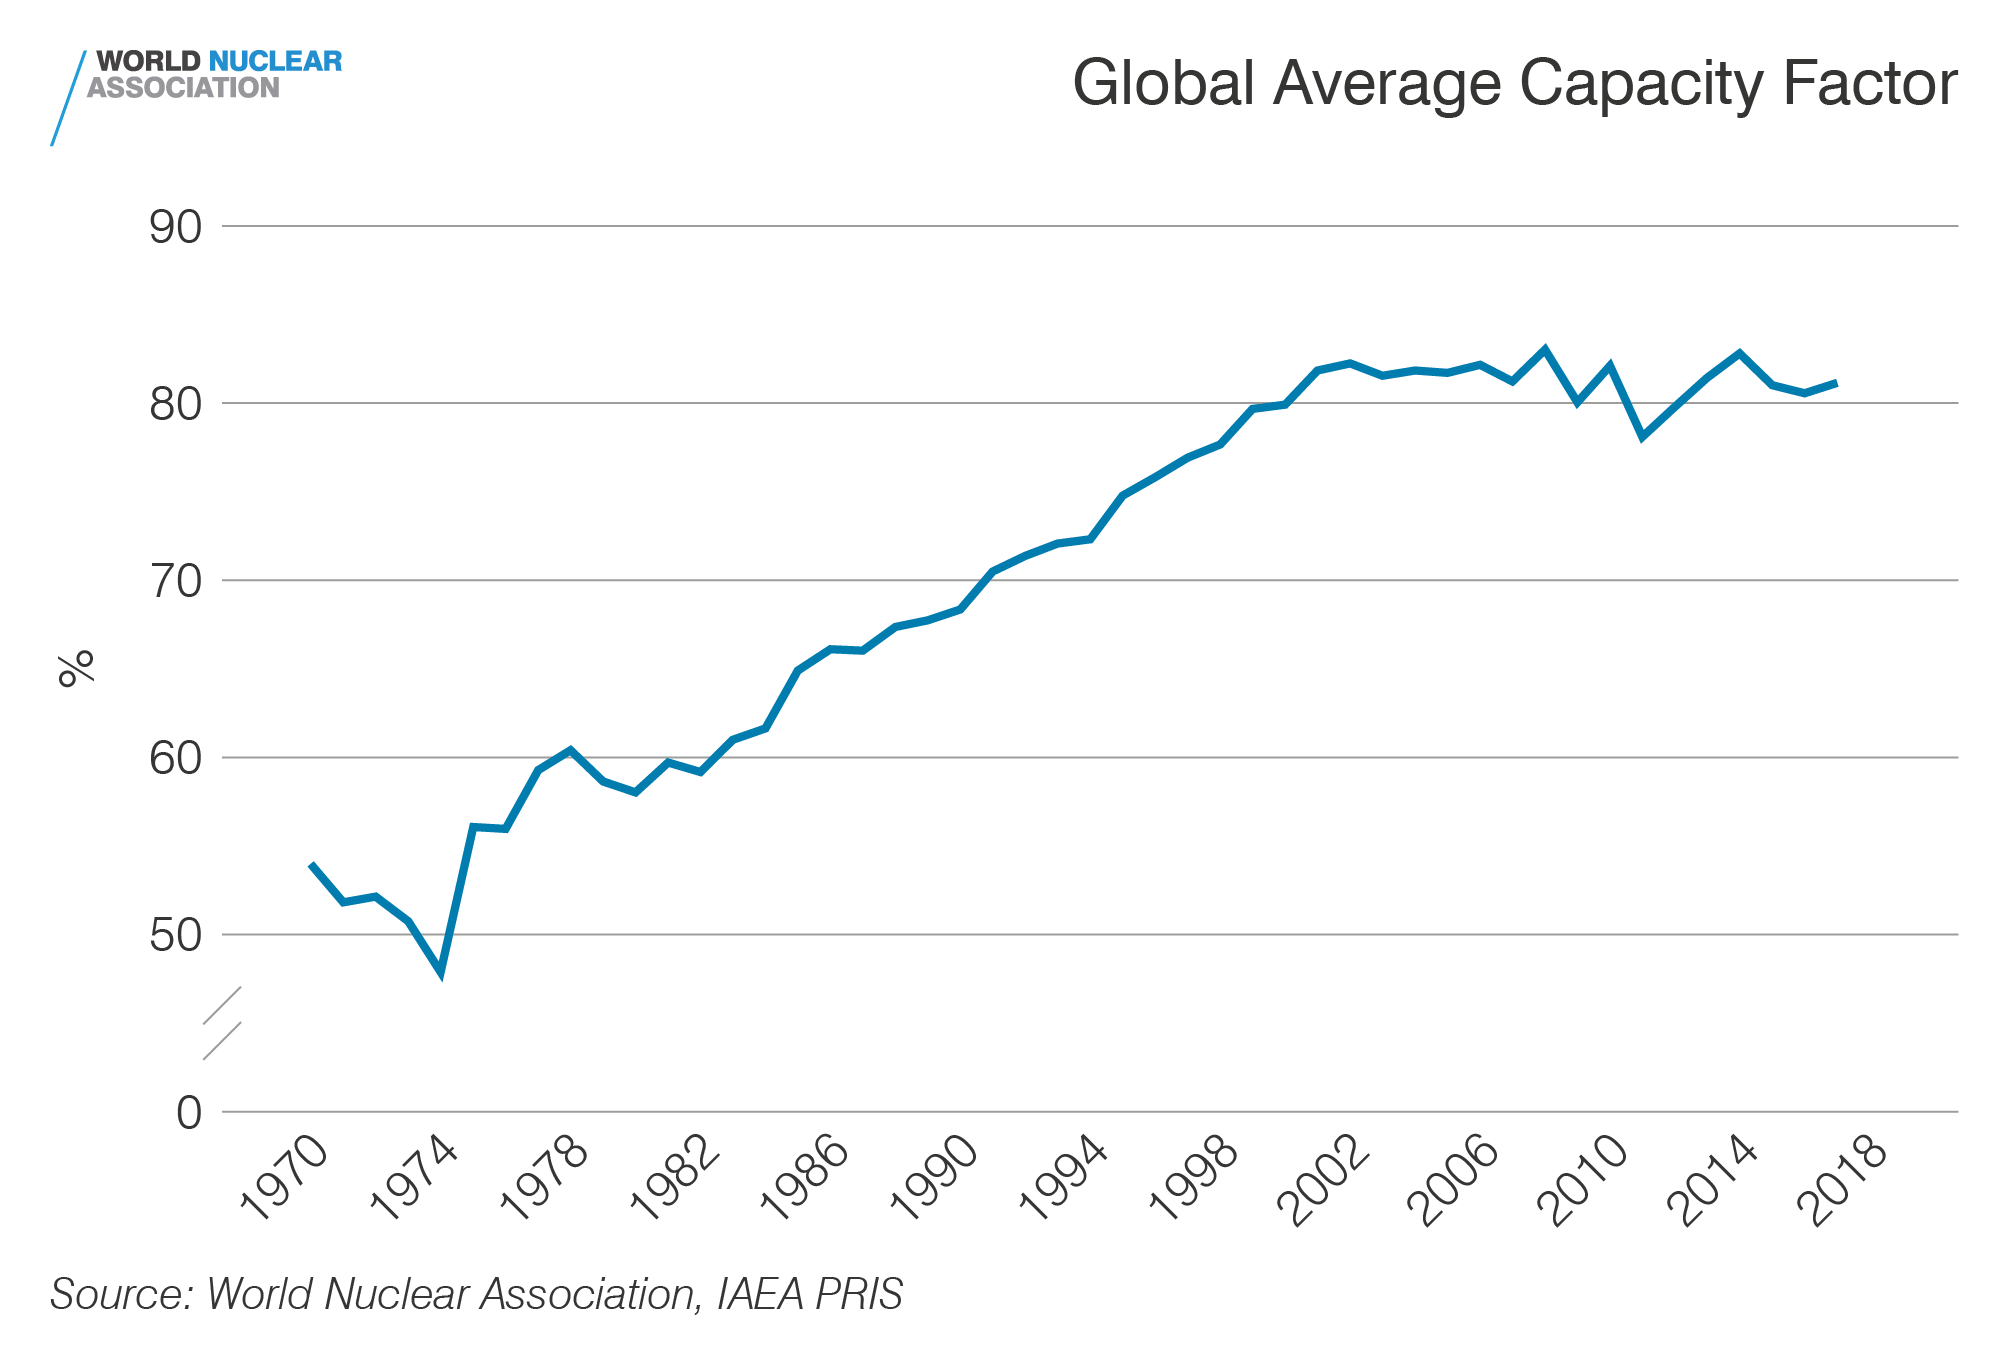 Global average capacity factor